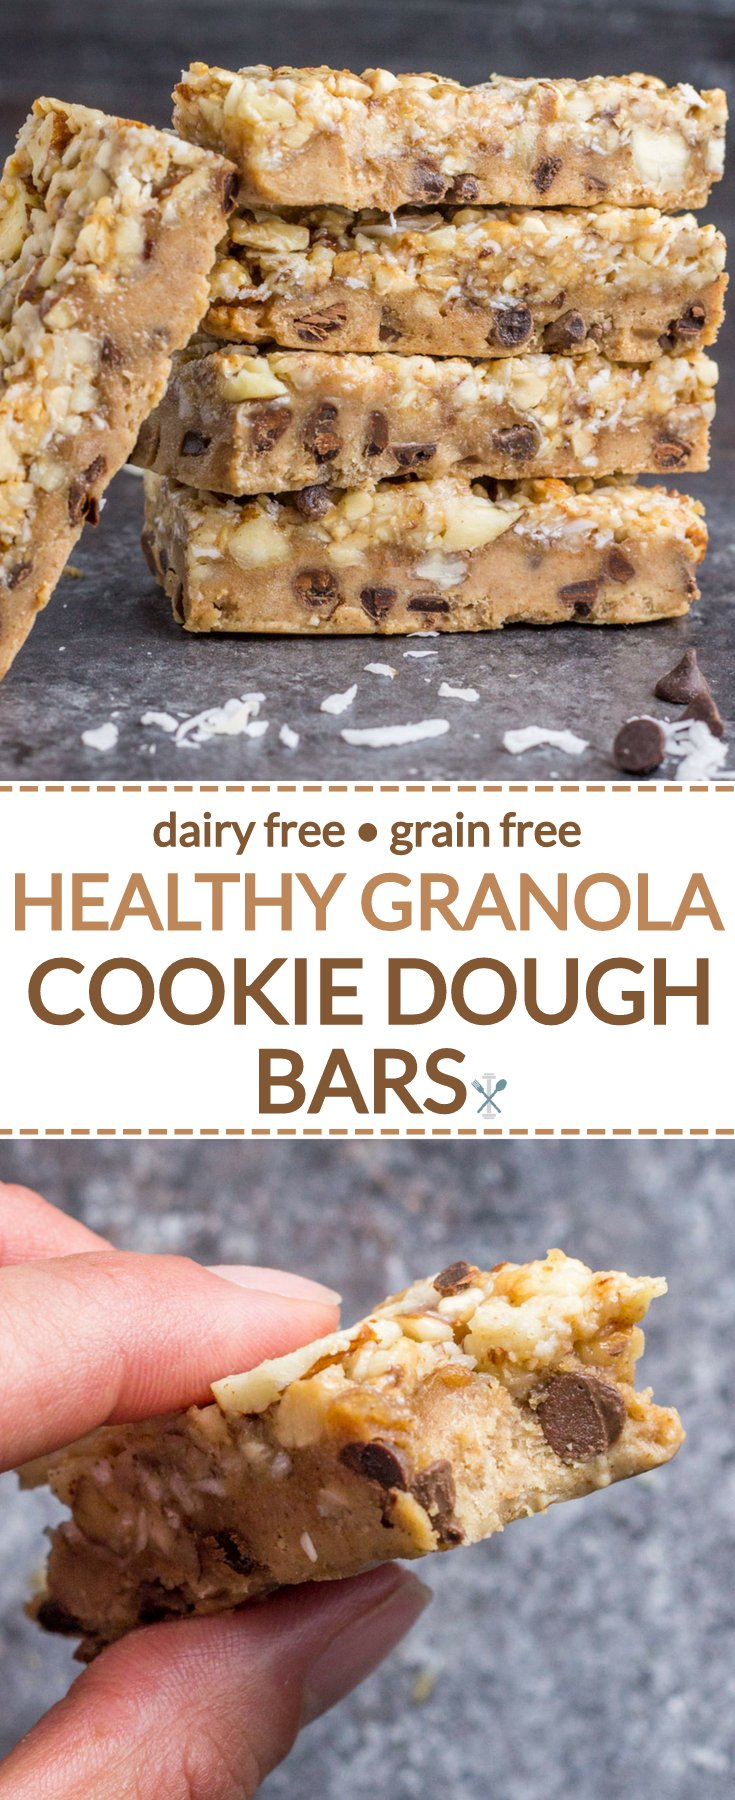 These healthy, nutty cookie dough bars are made with real food ingredients, dairy free, gluten free, grain free! My FAVORITE healthy dessert ever and naturally sweetened